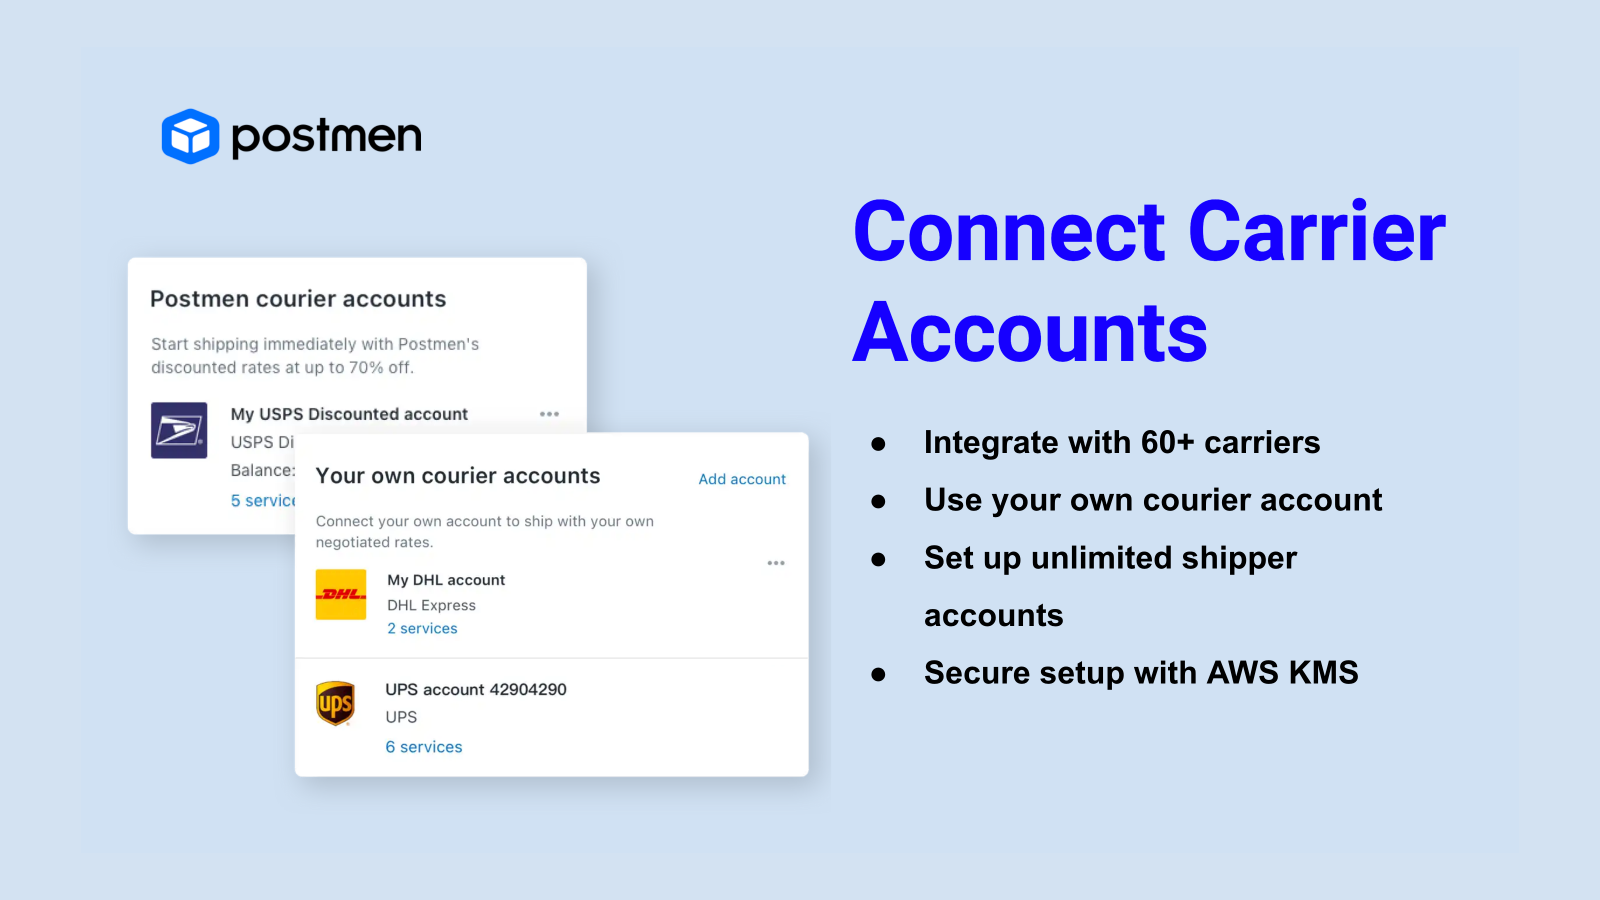 Integrate with 60+ couriers